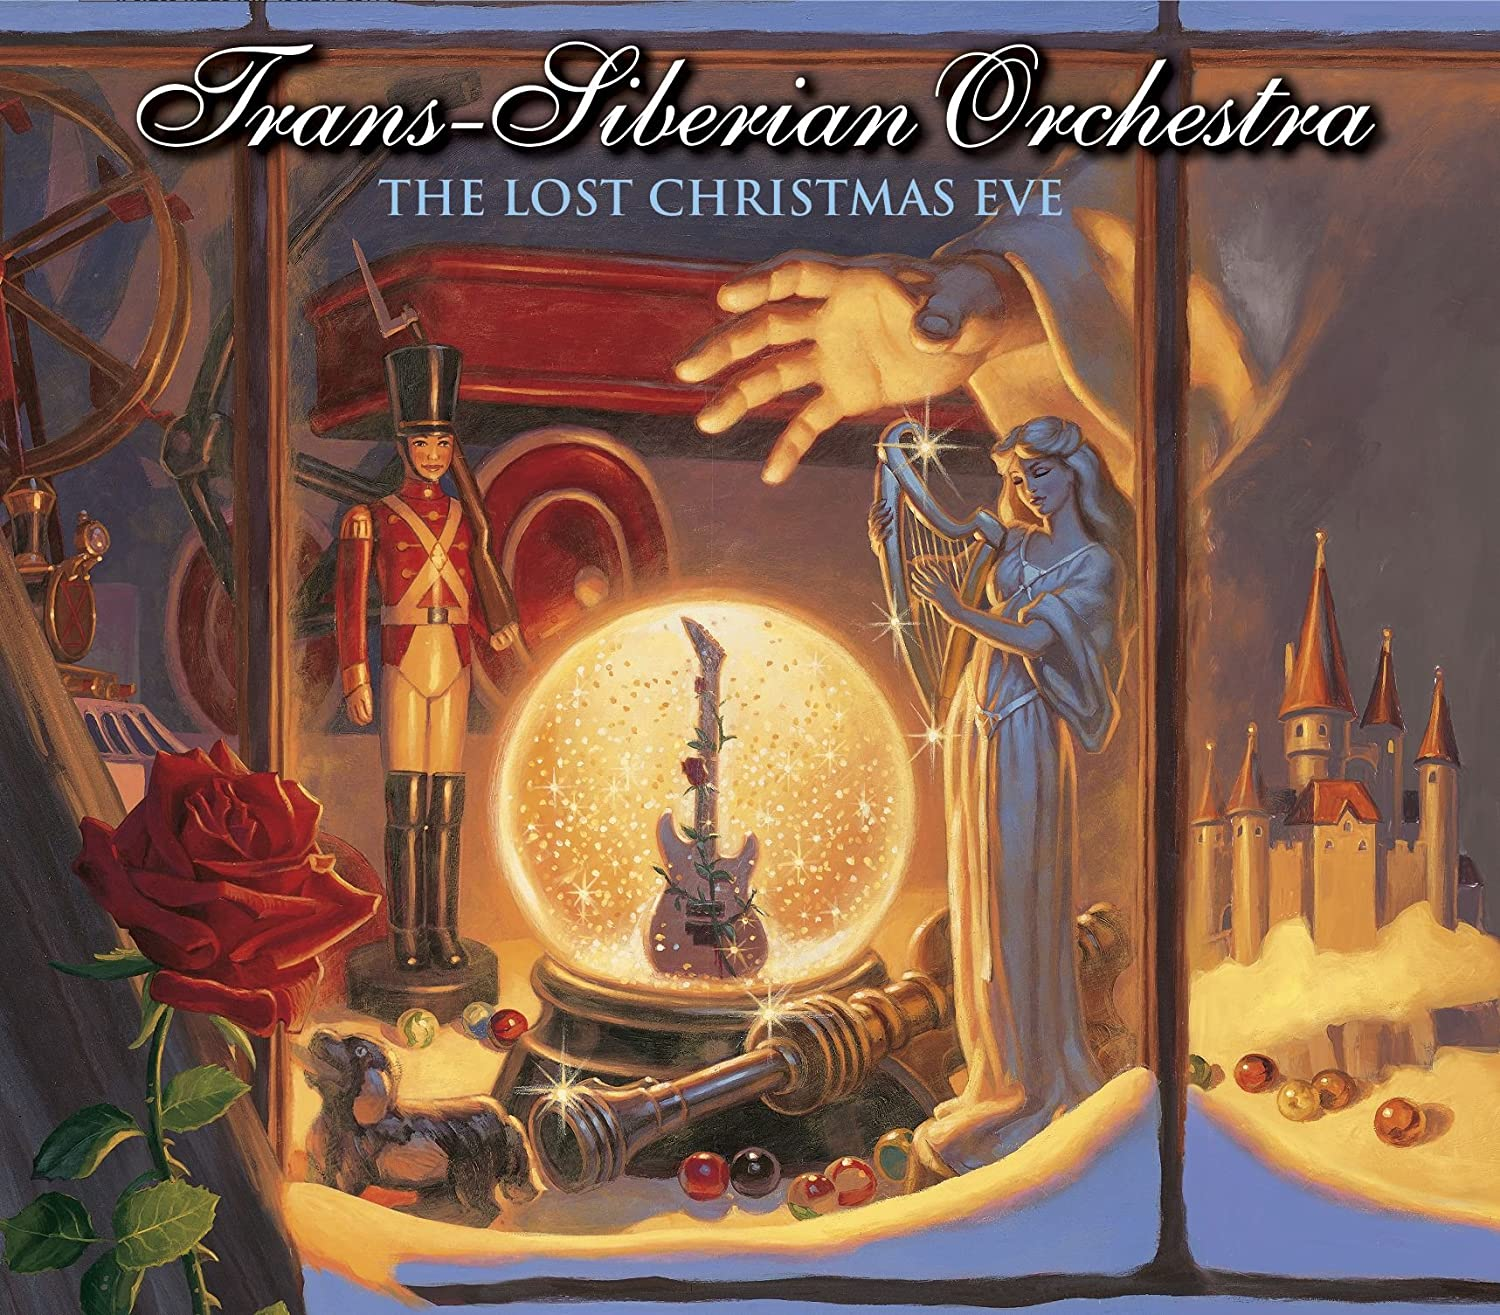 Trans-Siberian Orchestra - The Lost Christmas Eve - Amazon.com Music